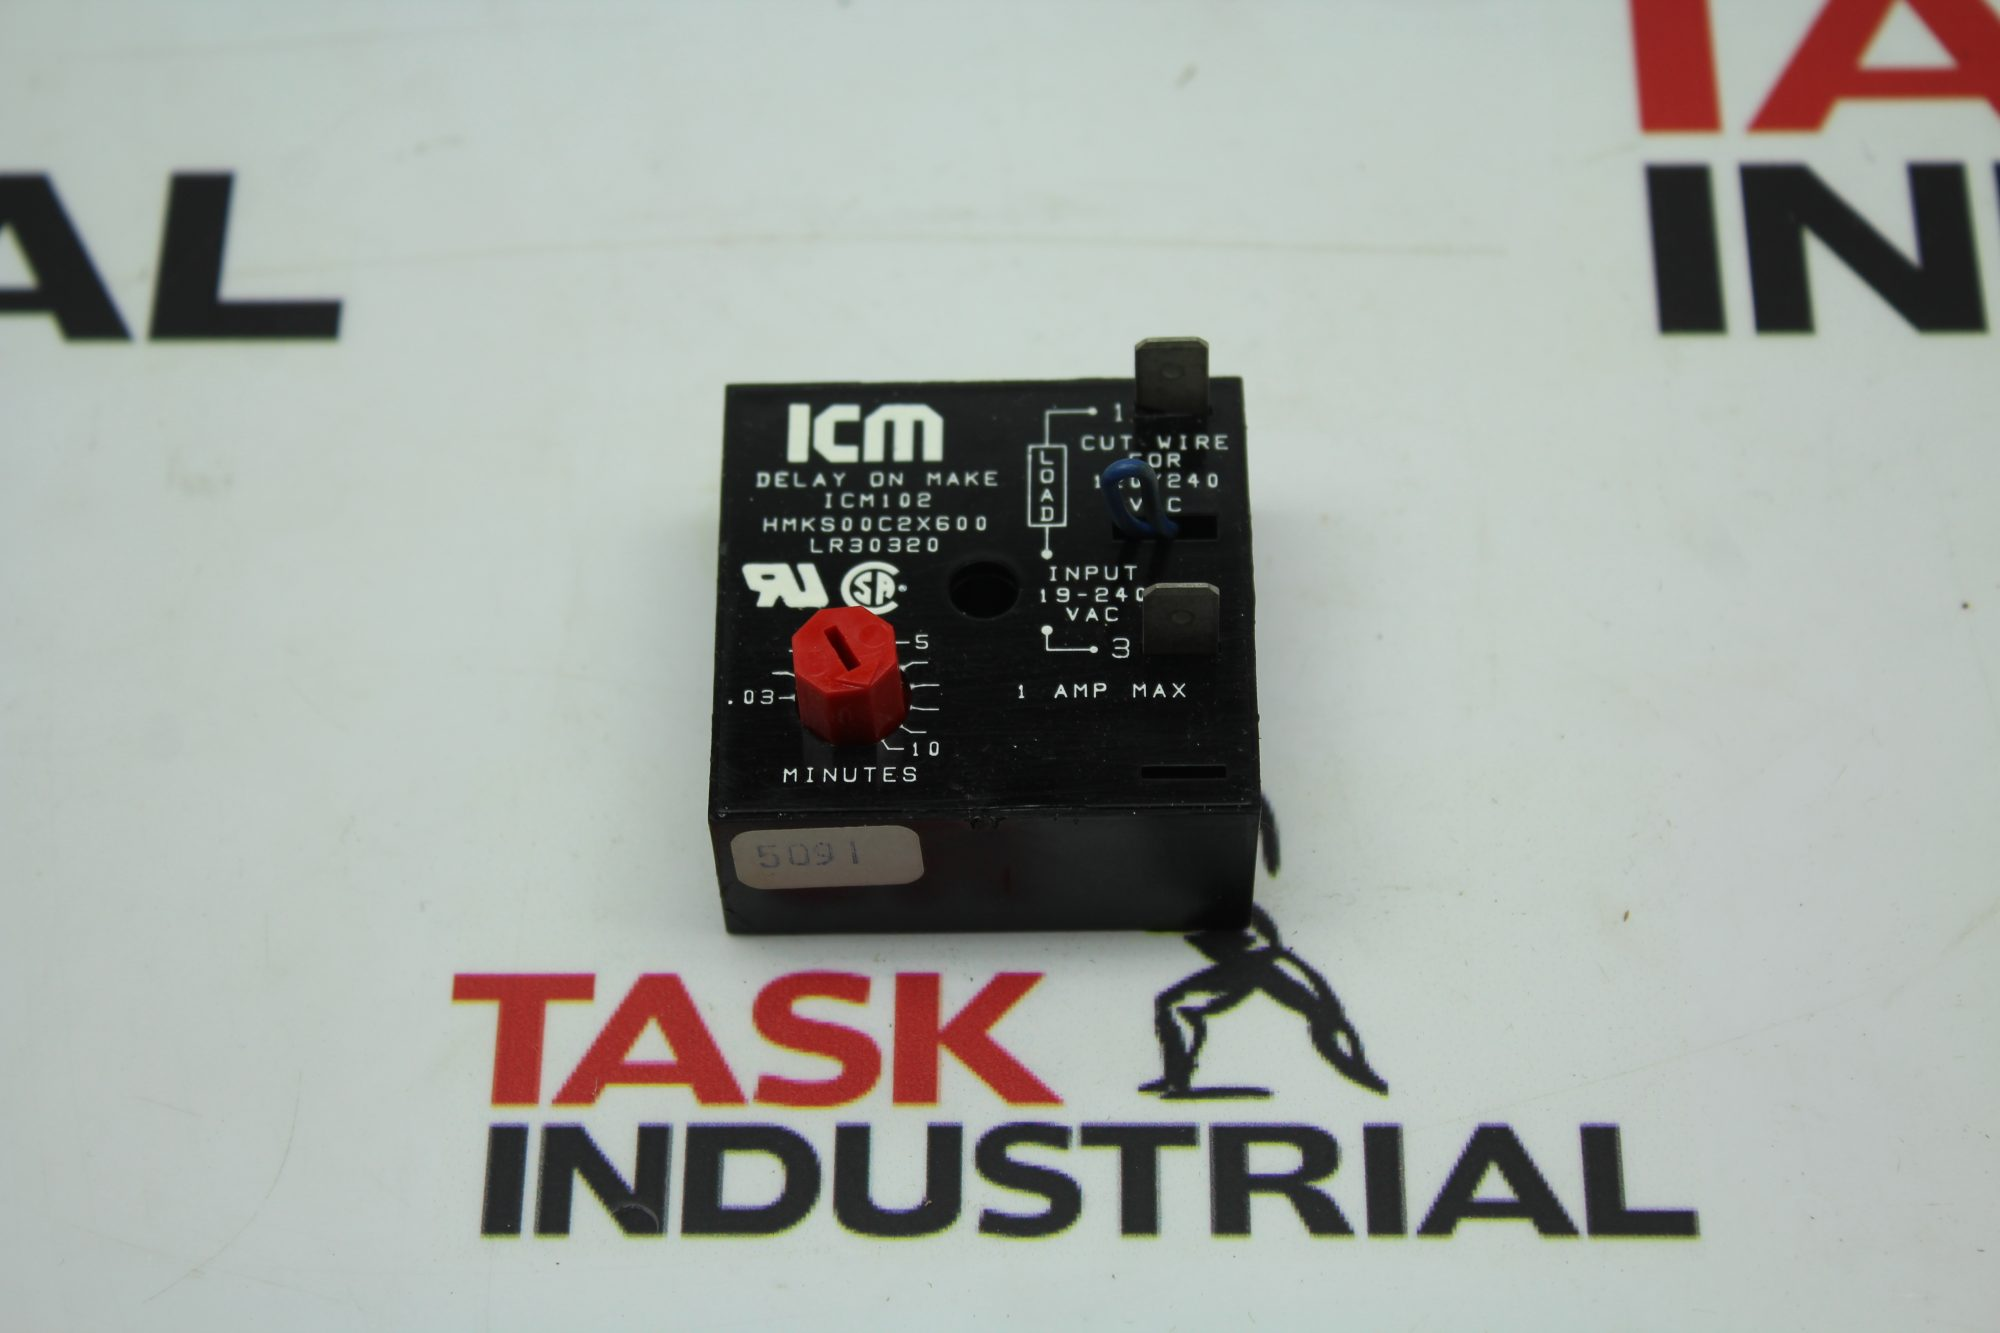 ICM 4E233 .03-10Mins Time Delay ON Make Relay